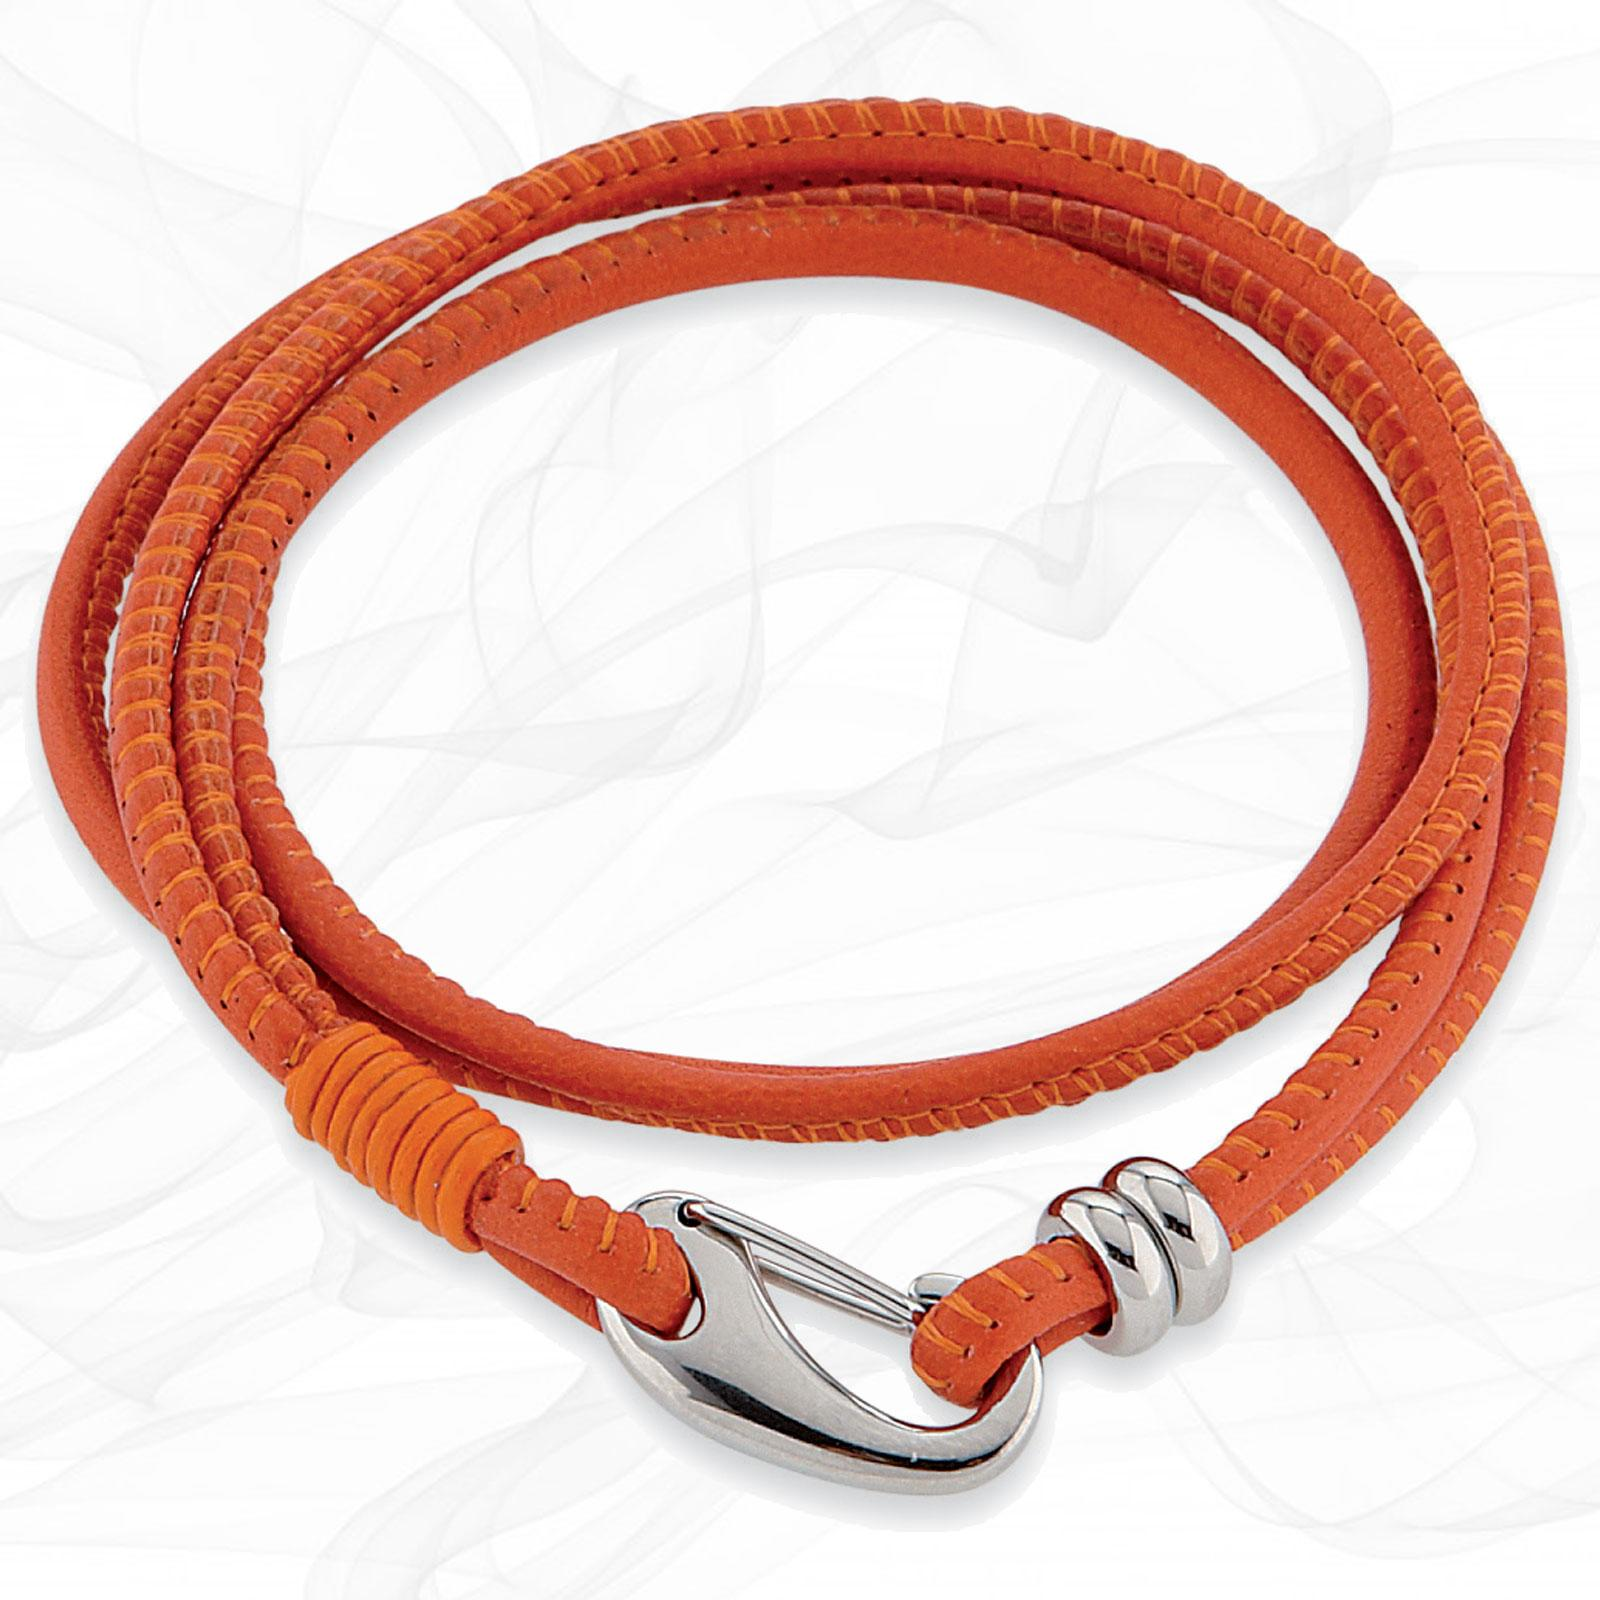 Simple smooth Orange 3mm Nappa Double wrap Leather Bracelet for Women